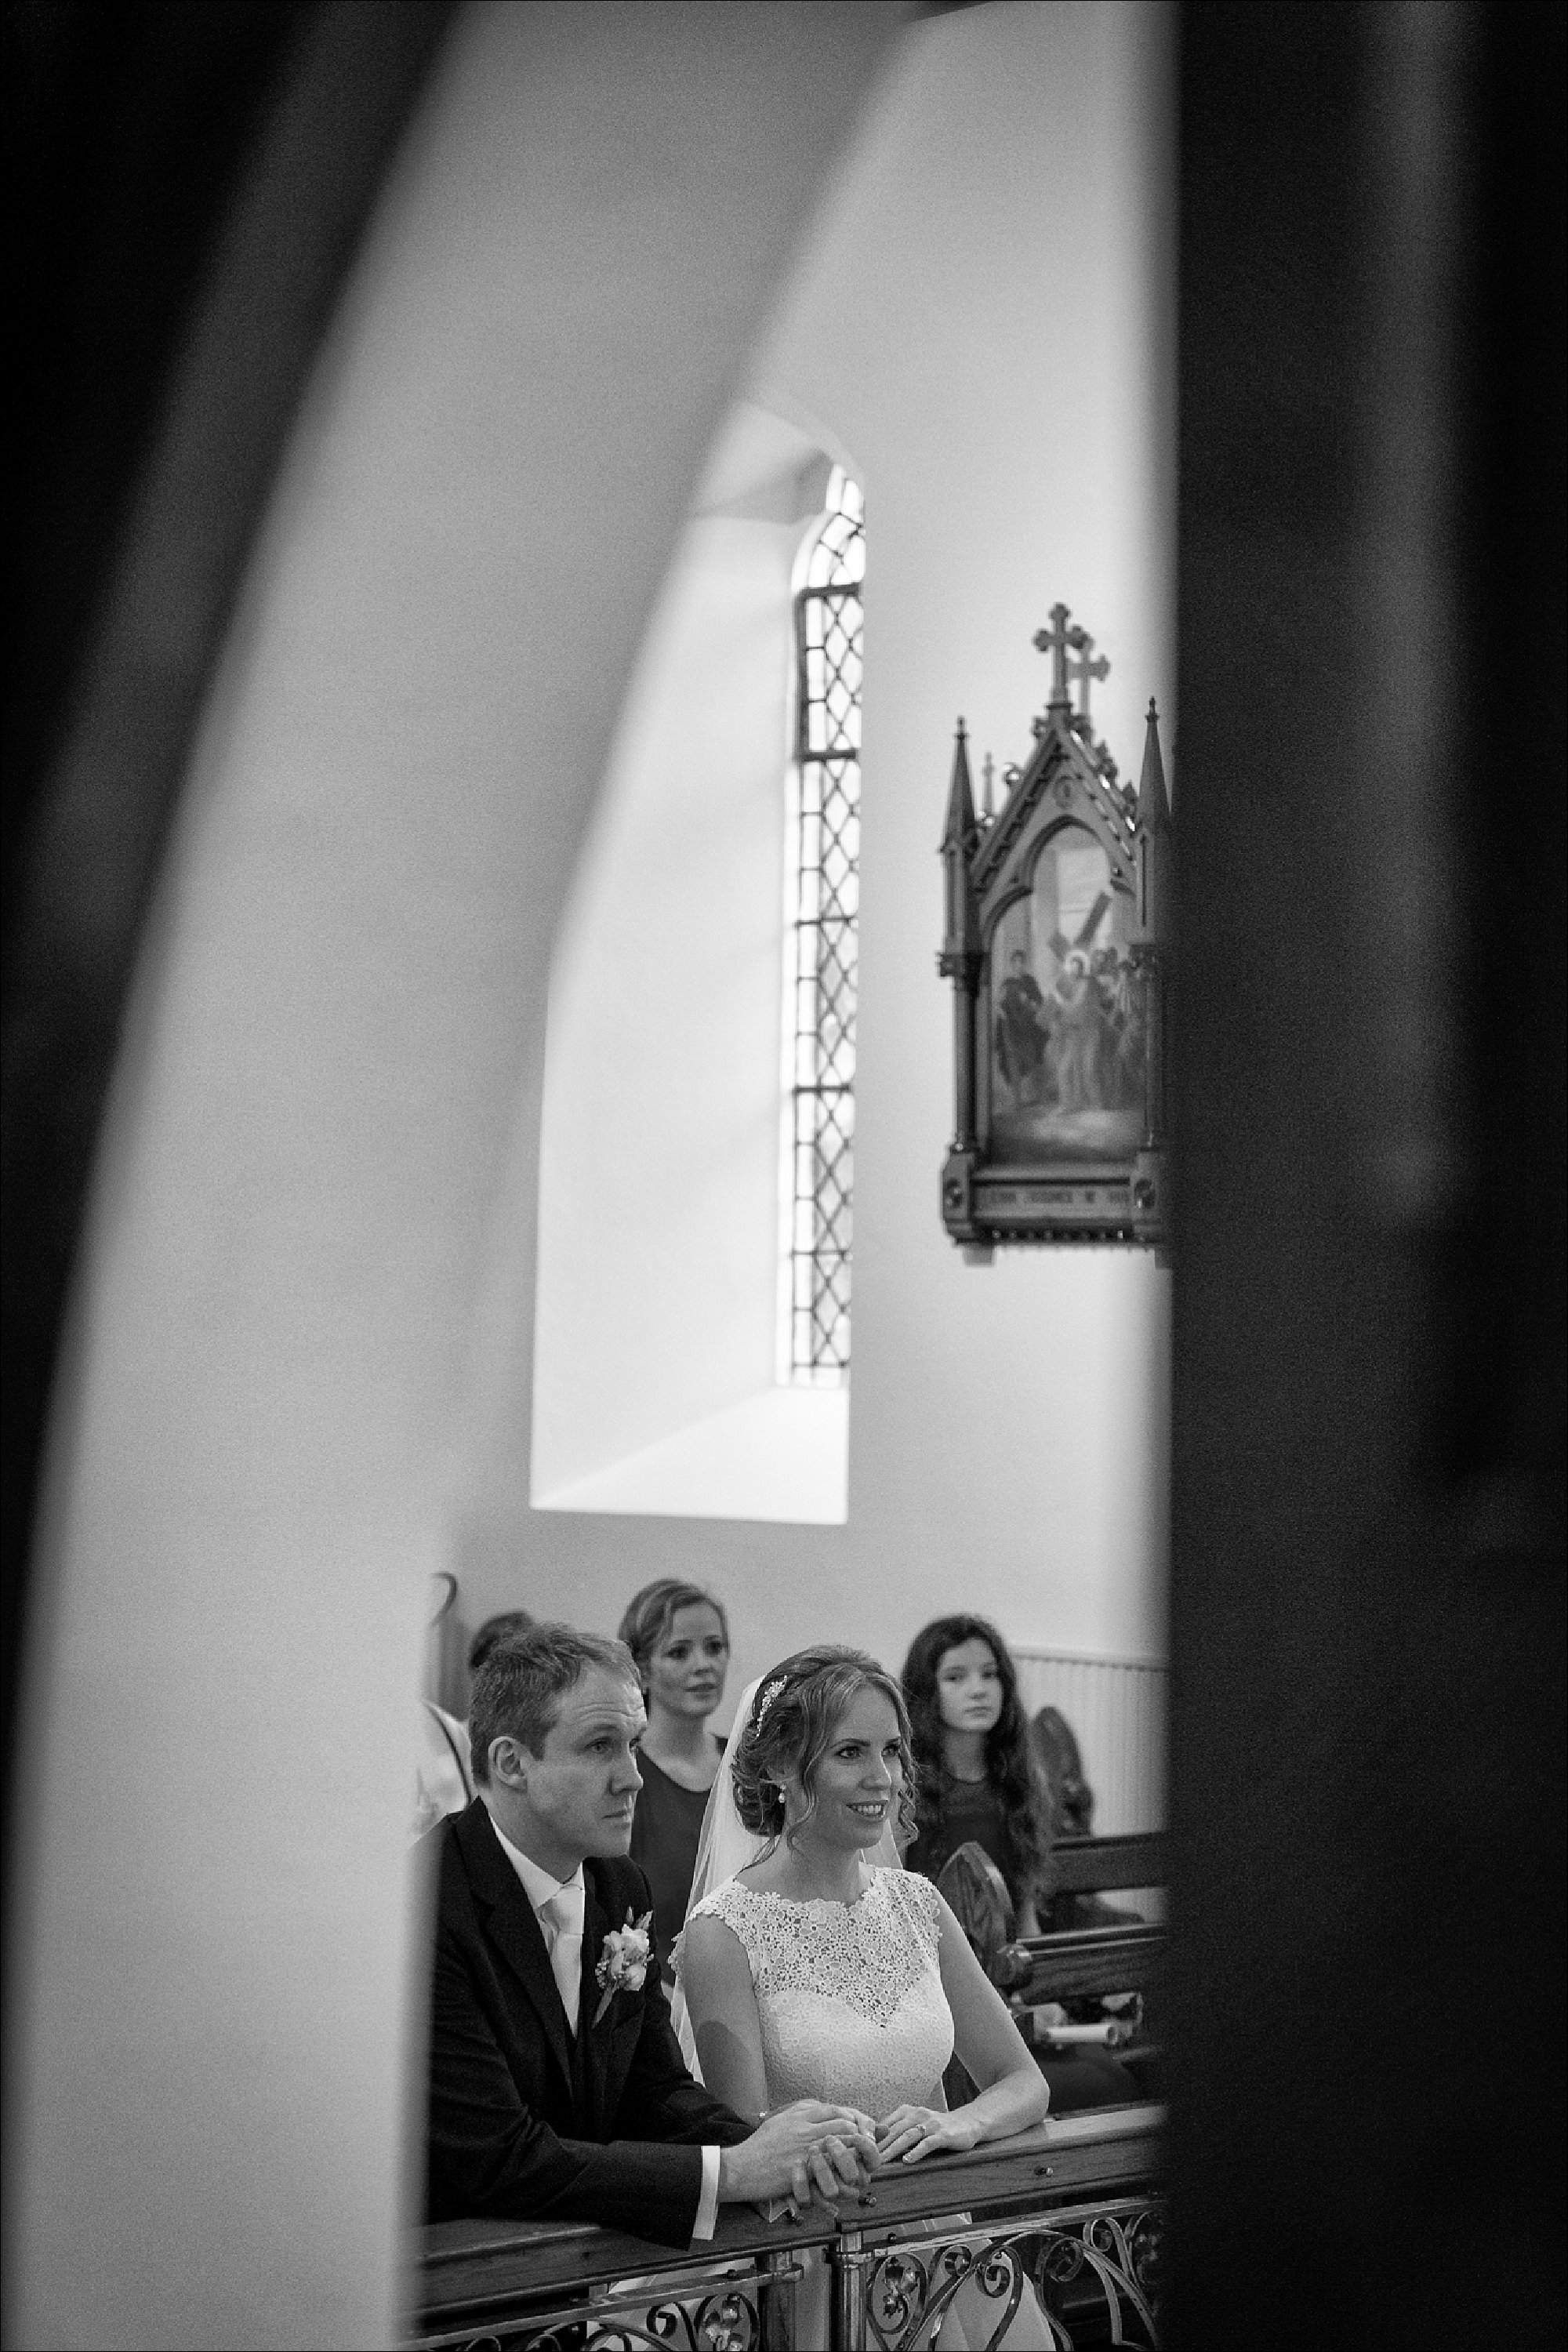 dublin wedding photographer david duignan photography tankardstown weddings slane rathfeigh church ireland 0020